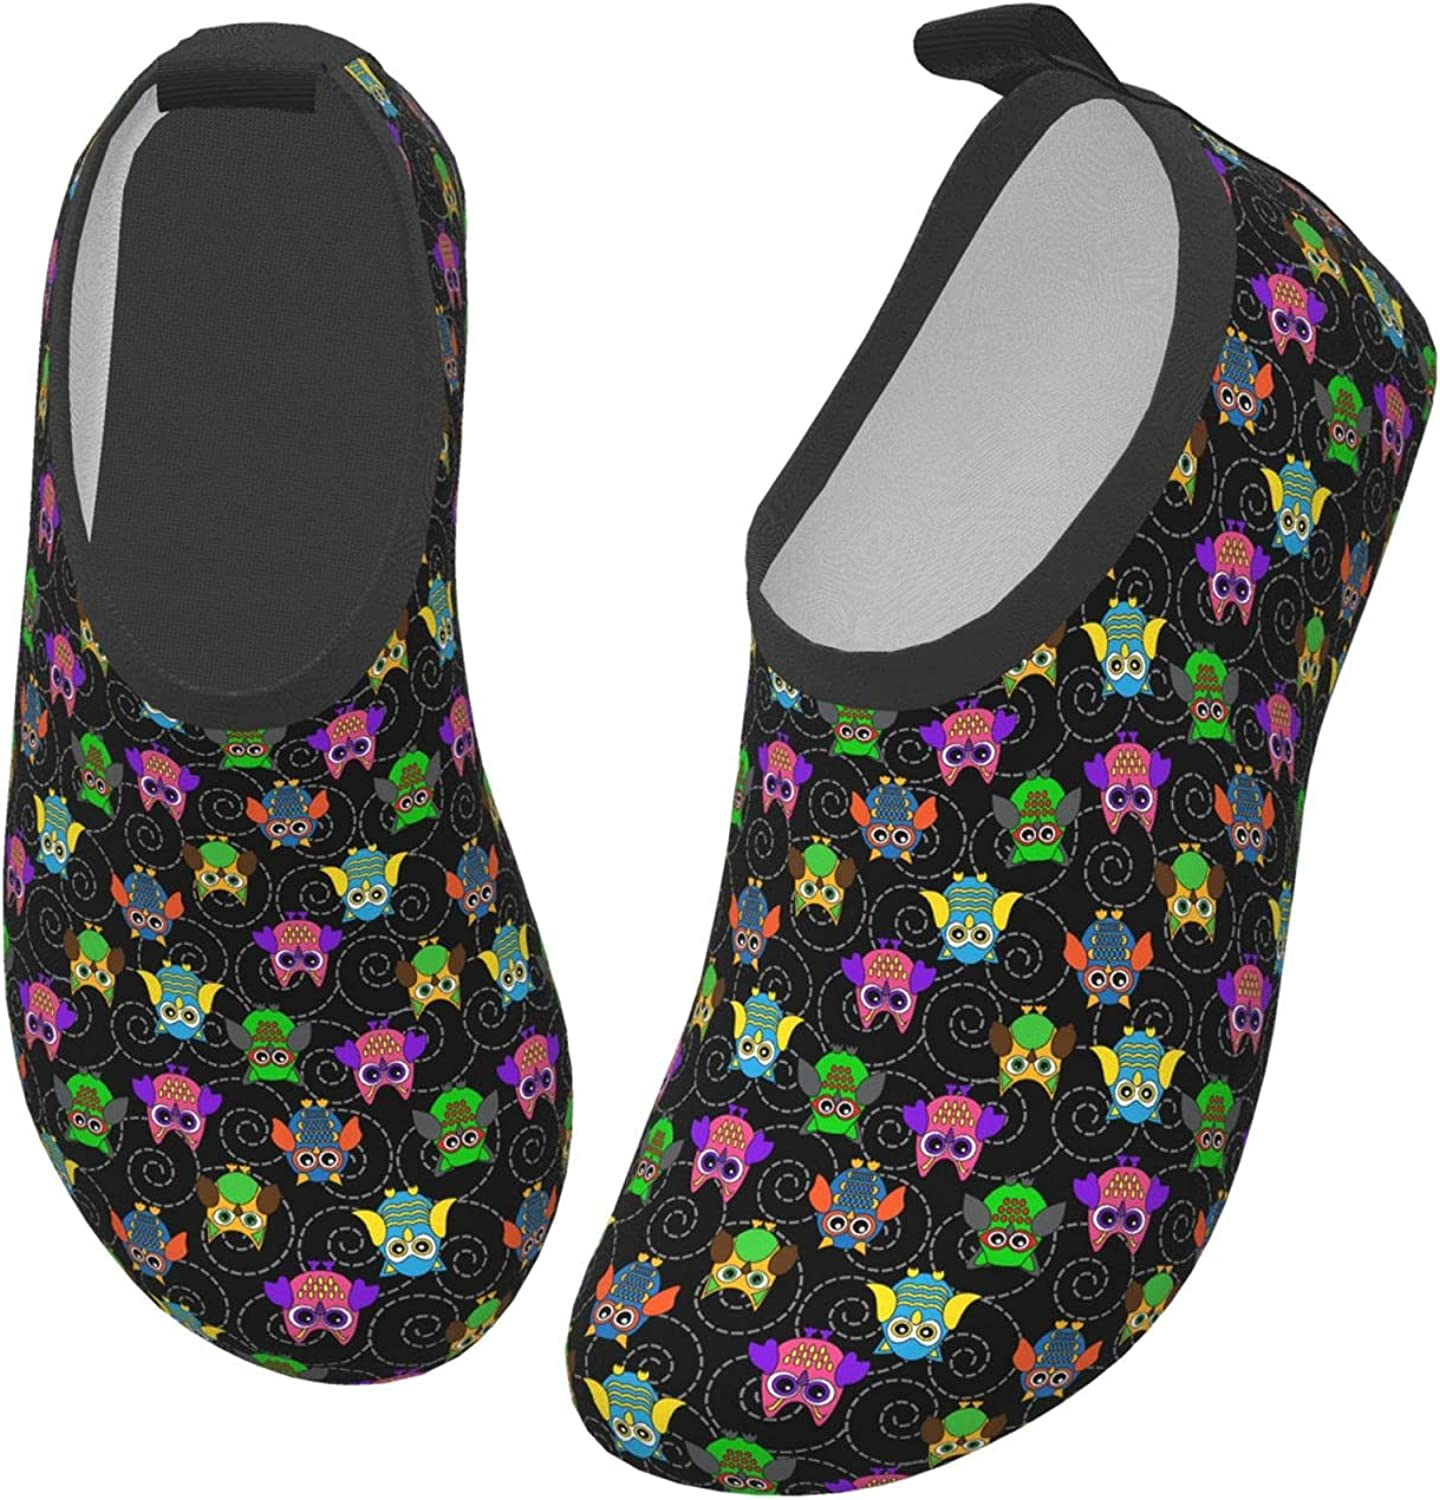 Halloween Funny Owl Autumn Animal Children's Water Shoes Feel Barefoot for Swimming Beach Boating Surfing Yoga